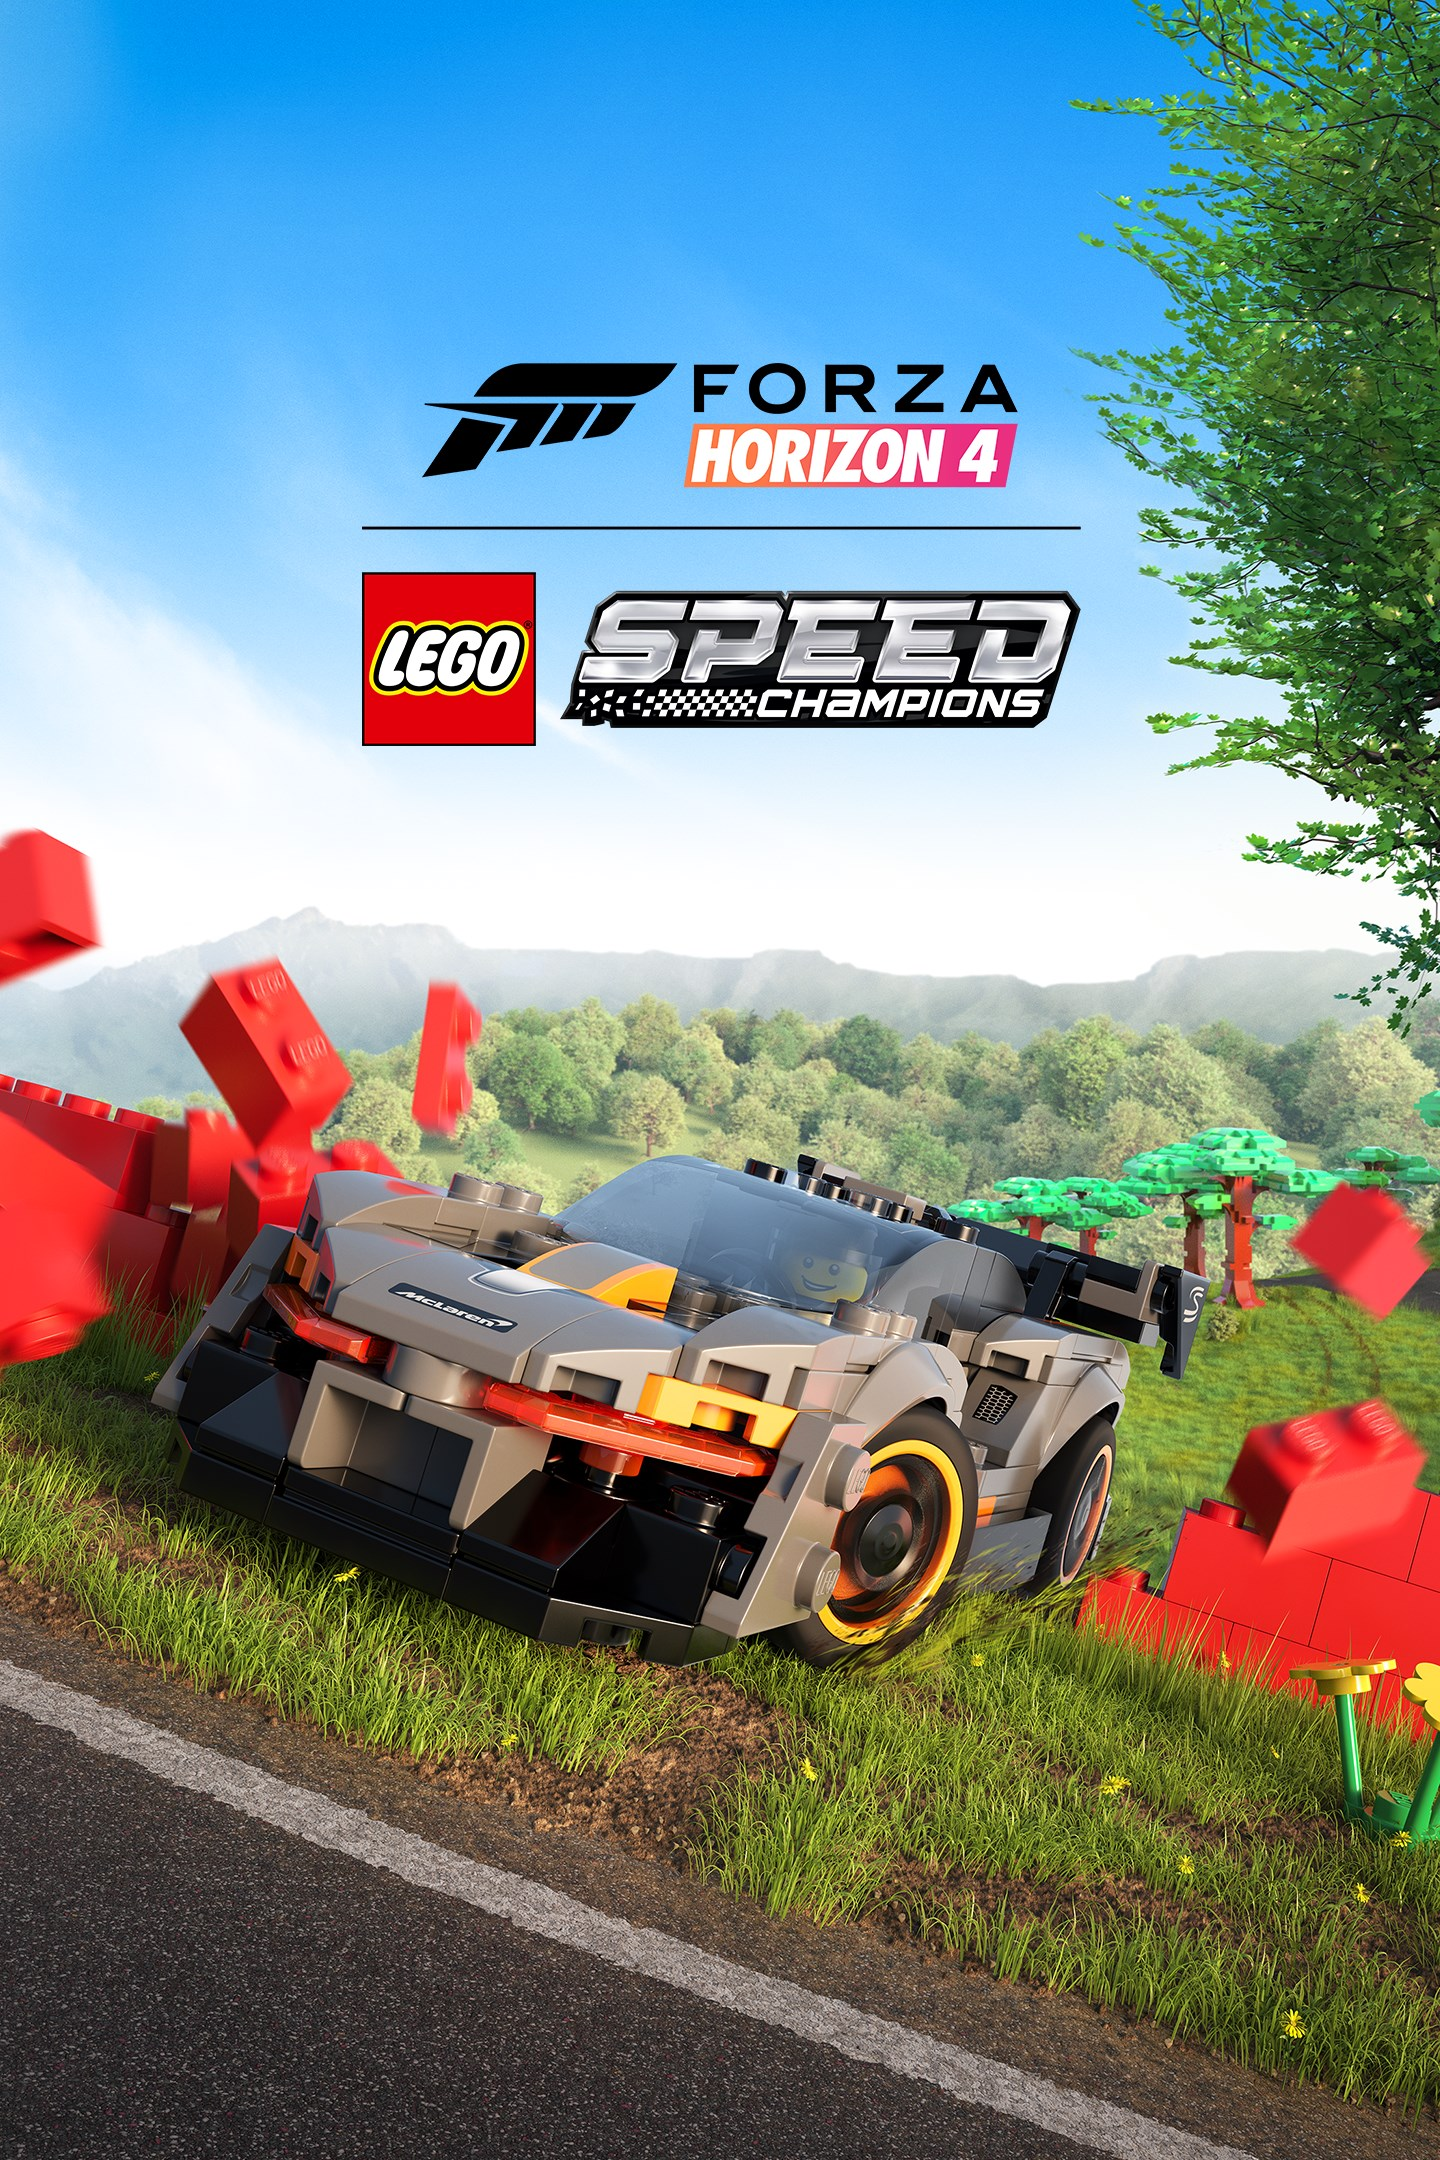 Forza Horizon 4/LEGO Speed Champions